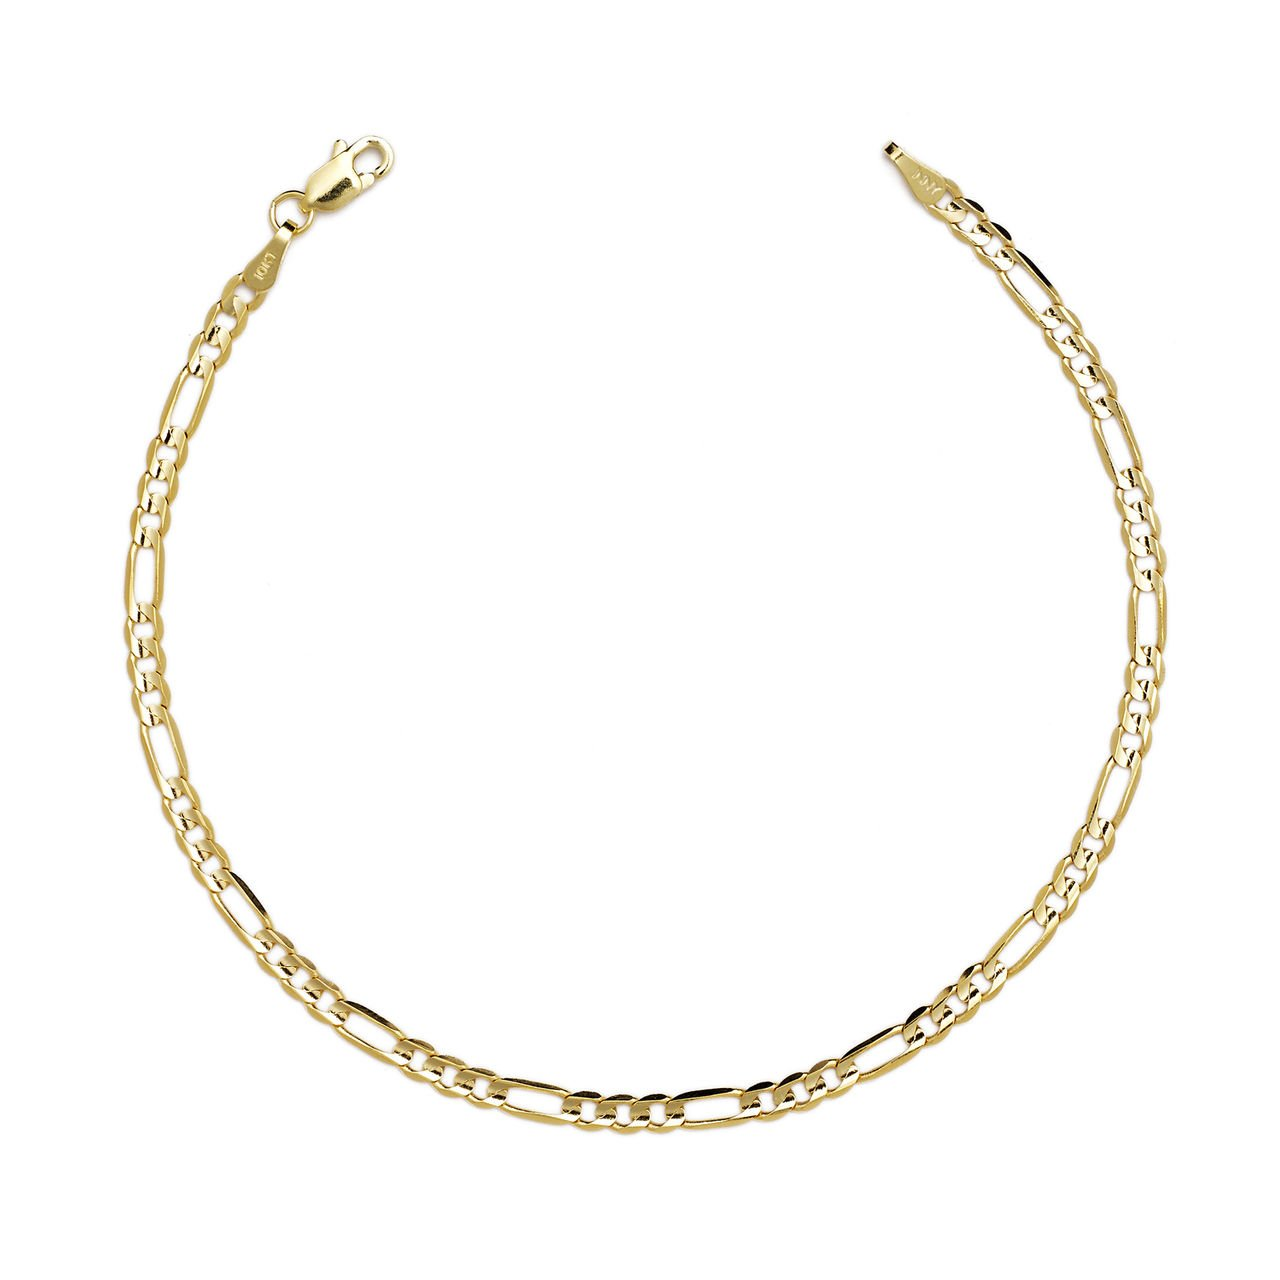 8 Inch 14k Yellow Gold Hollow Figaro Chain Bracelet, 0.13 Inch (3.2mm)